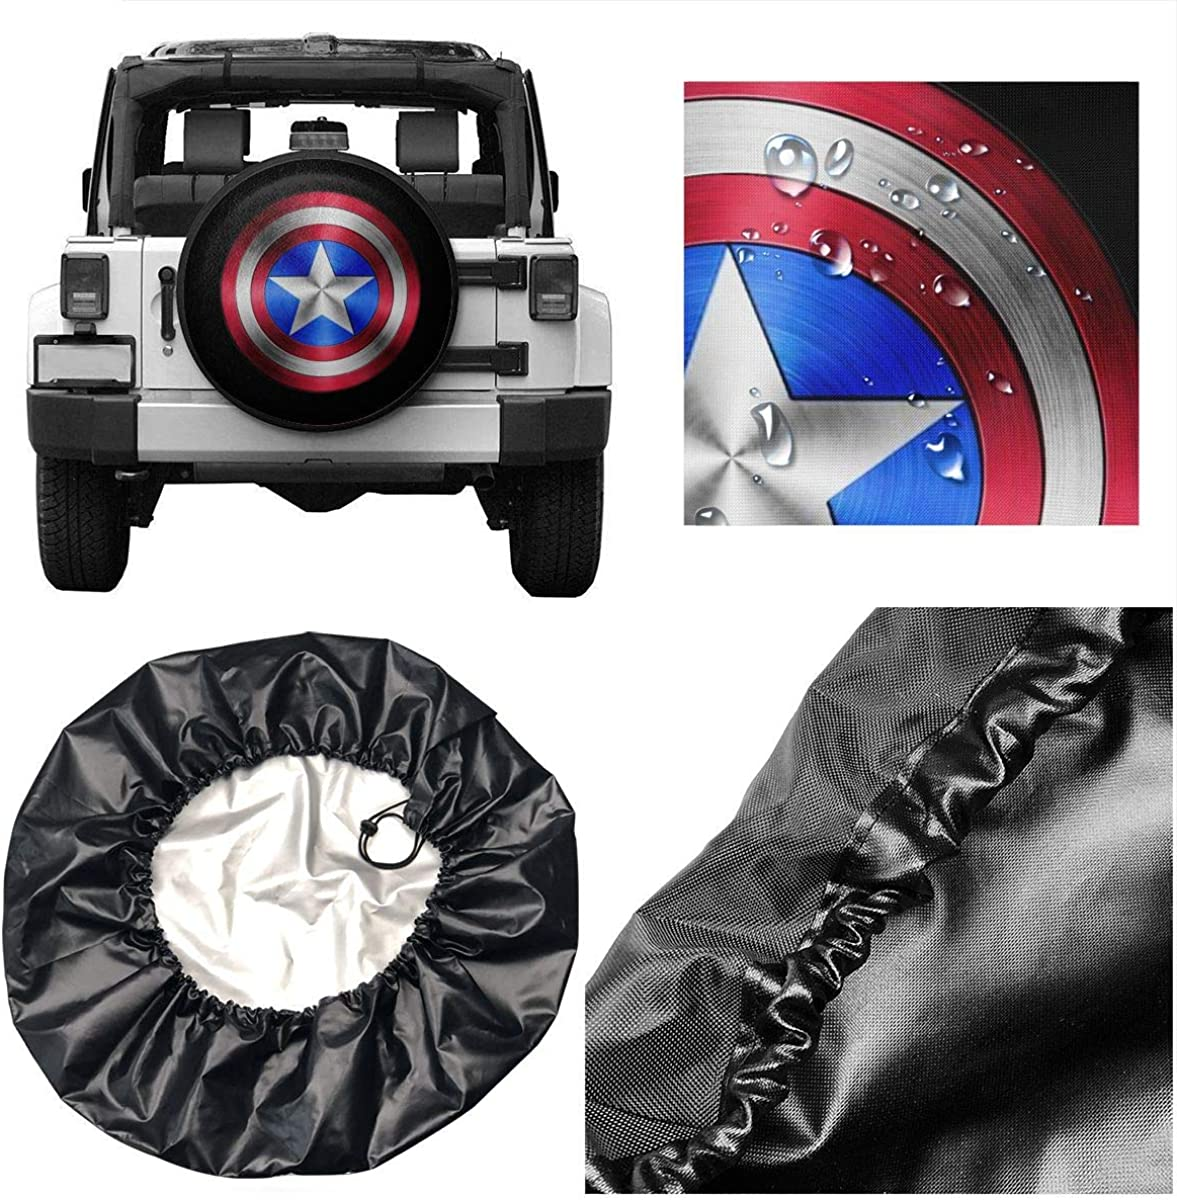 RV Universal Fit for Jeep Car Truck Wheel 14 15 16 17 Inches DEETU Spare Tire Cover Trailer